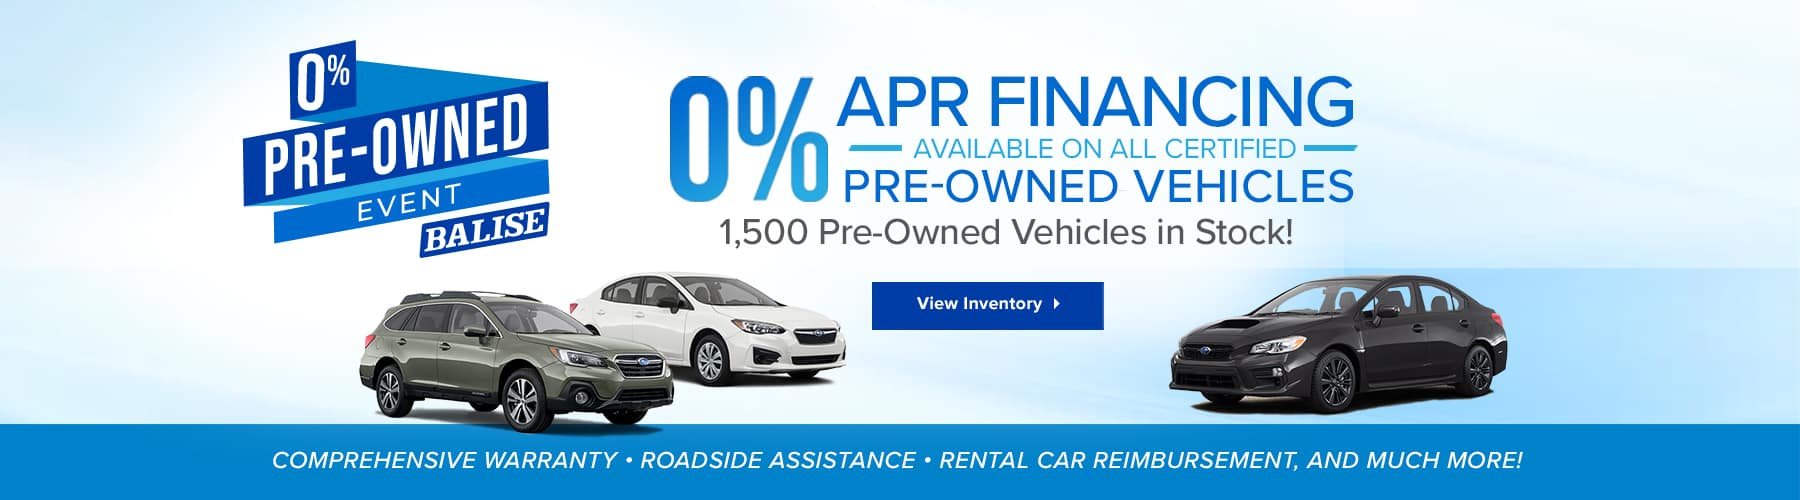 Zero percent financing on certified pre-owned vehicles